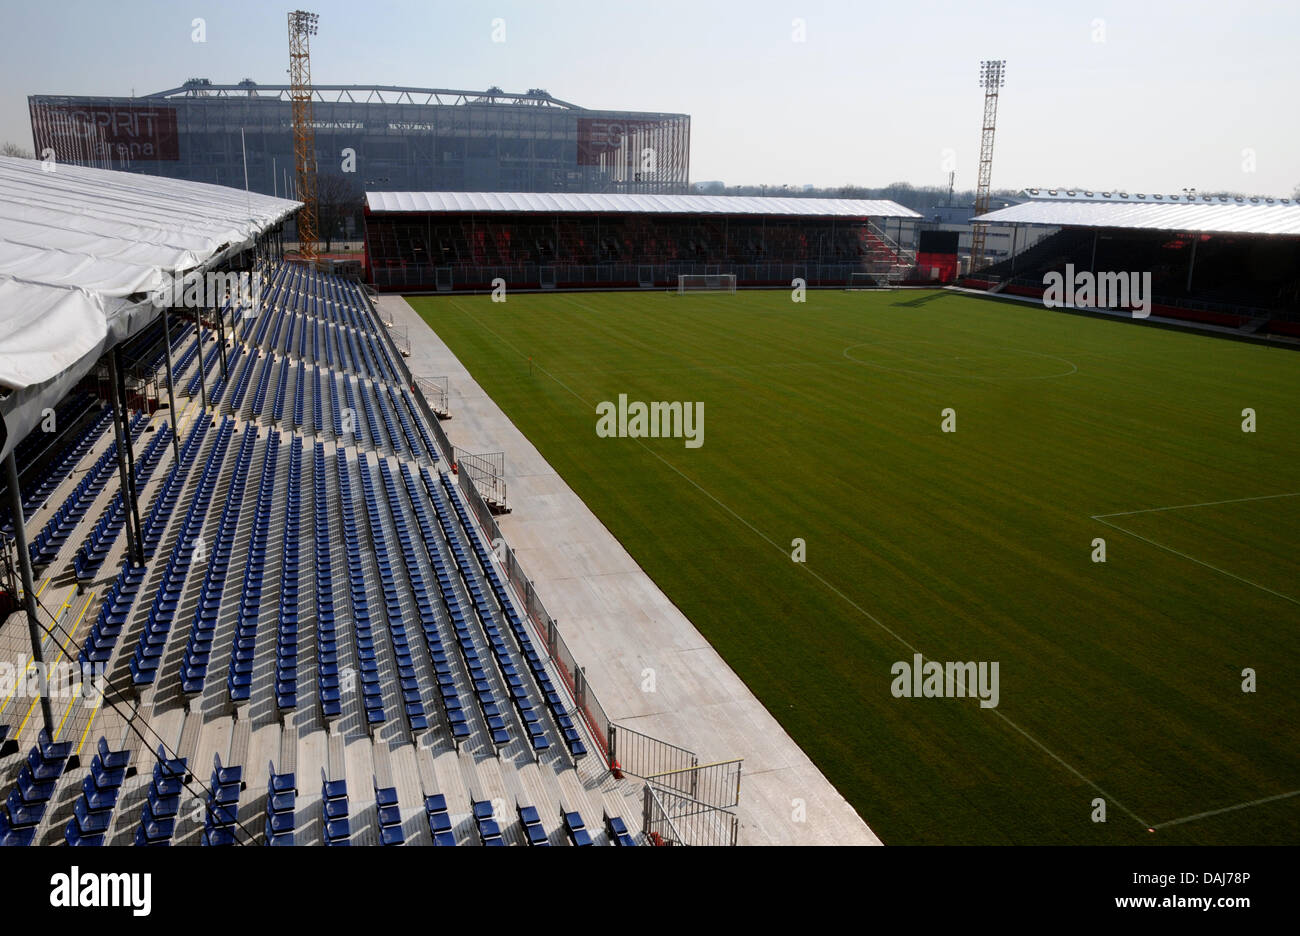 Interior view over mobile soccer stadium 'airberlin world'in Duesseldorf, Germany, 22 March 2011. - Stock Image